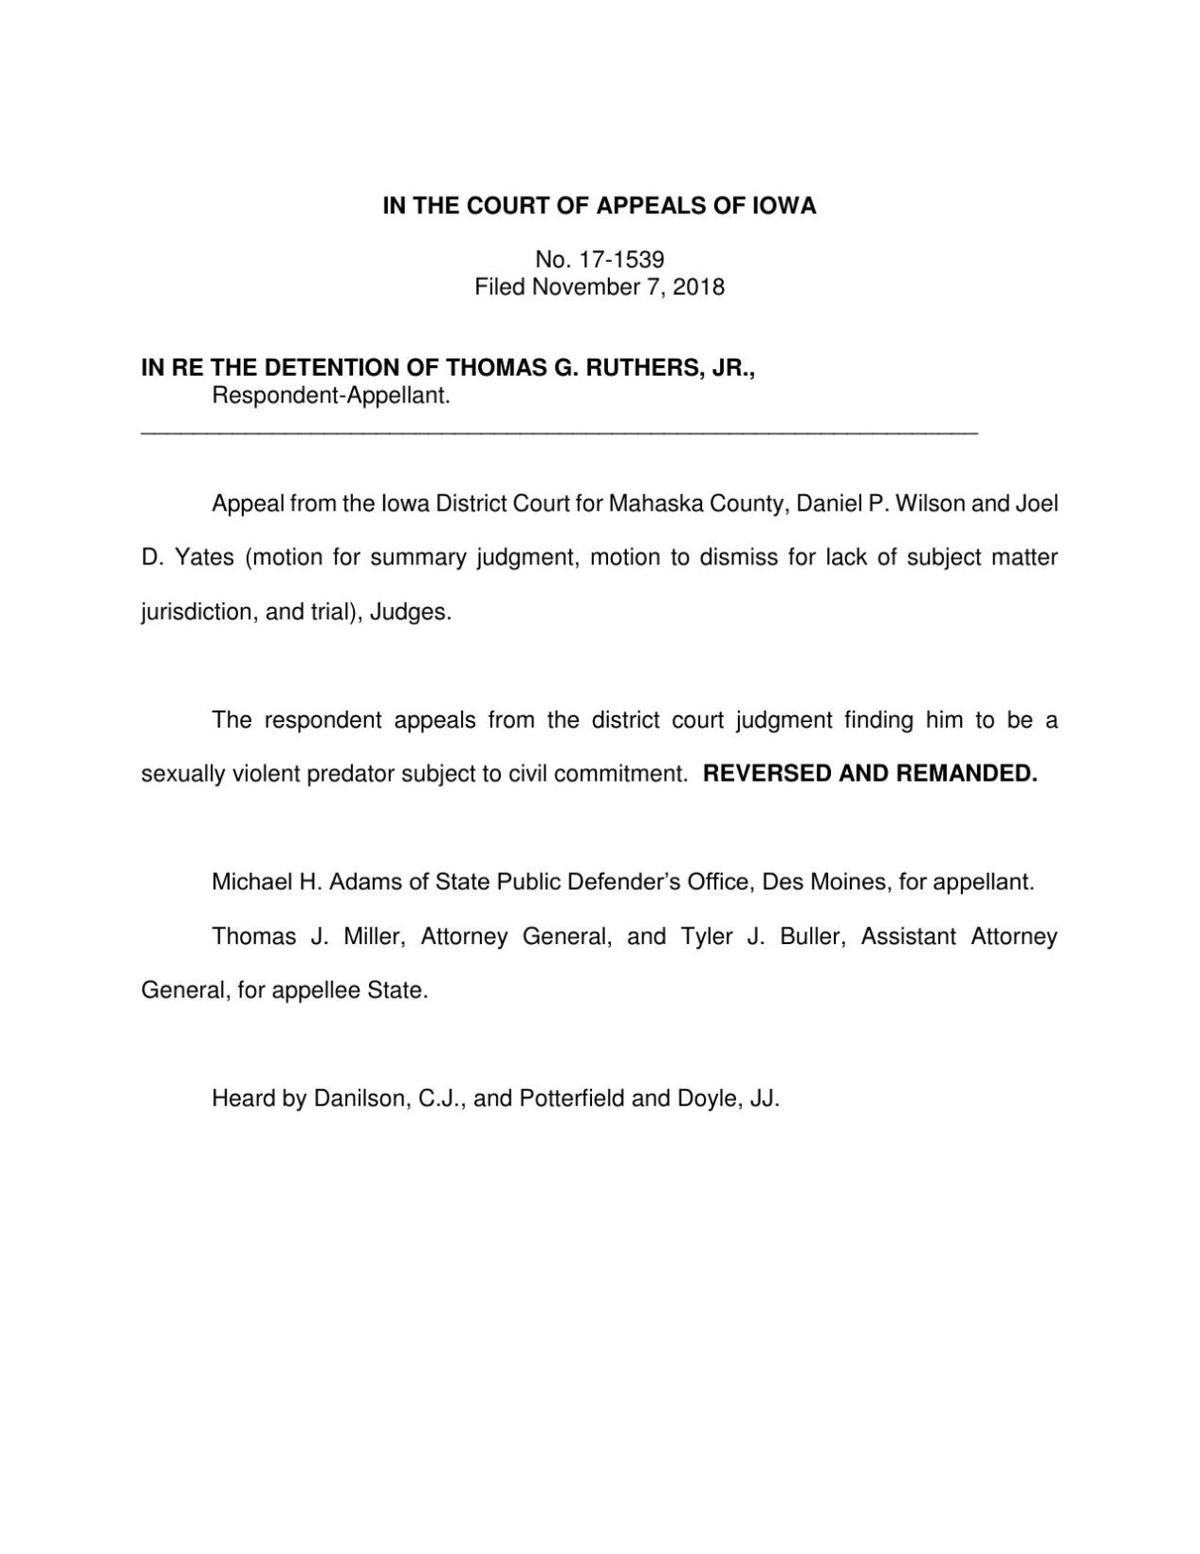 Ruthers court of appeals opinion.pdf